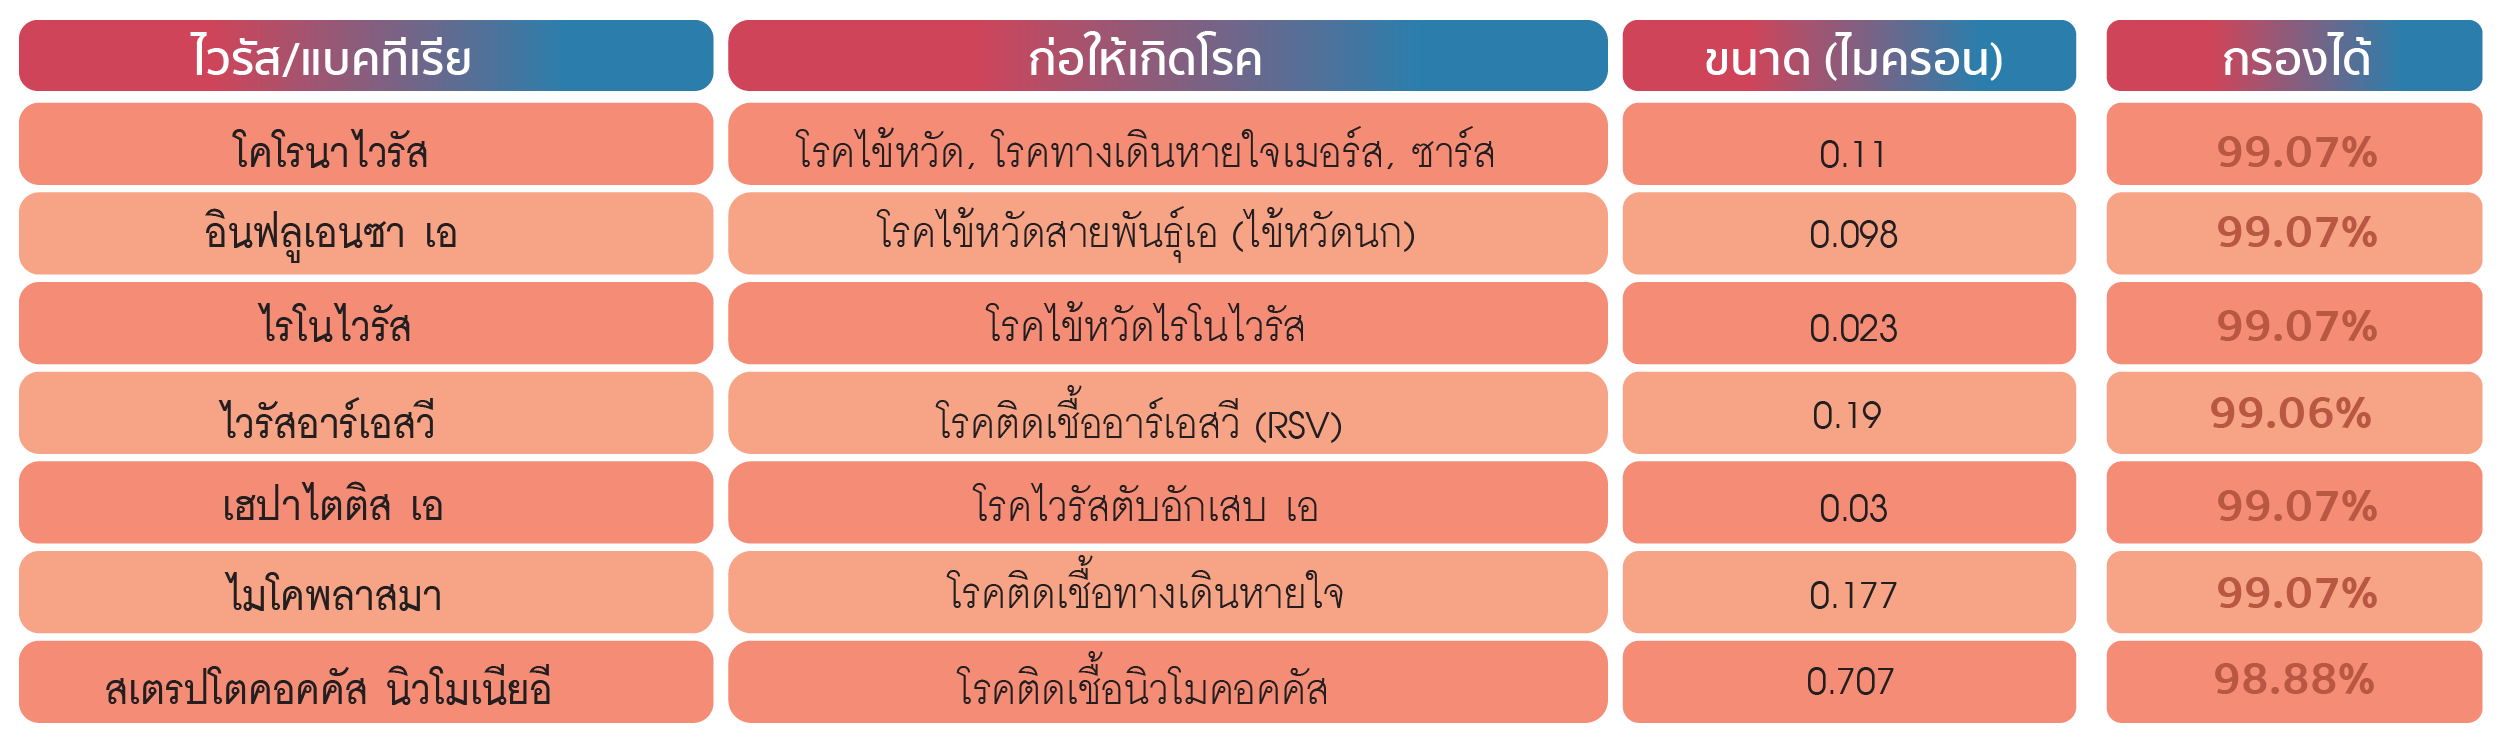 jul21-home1-14.png